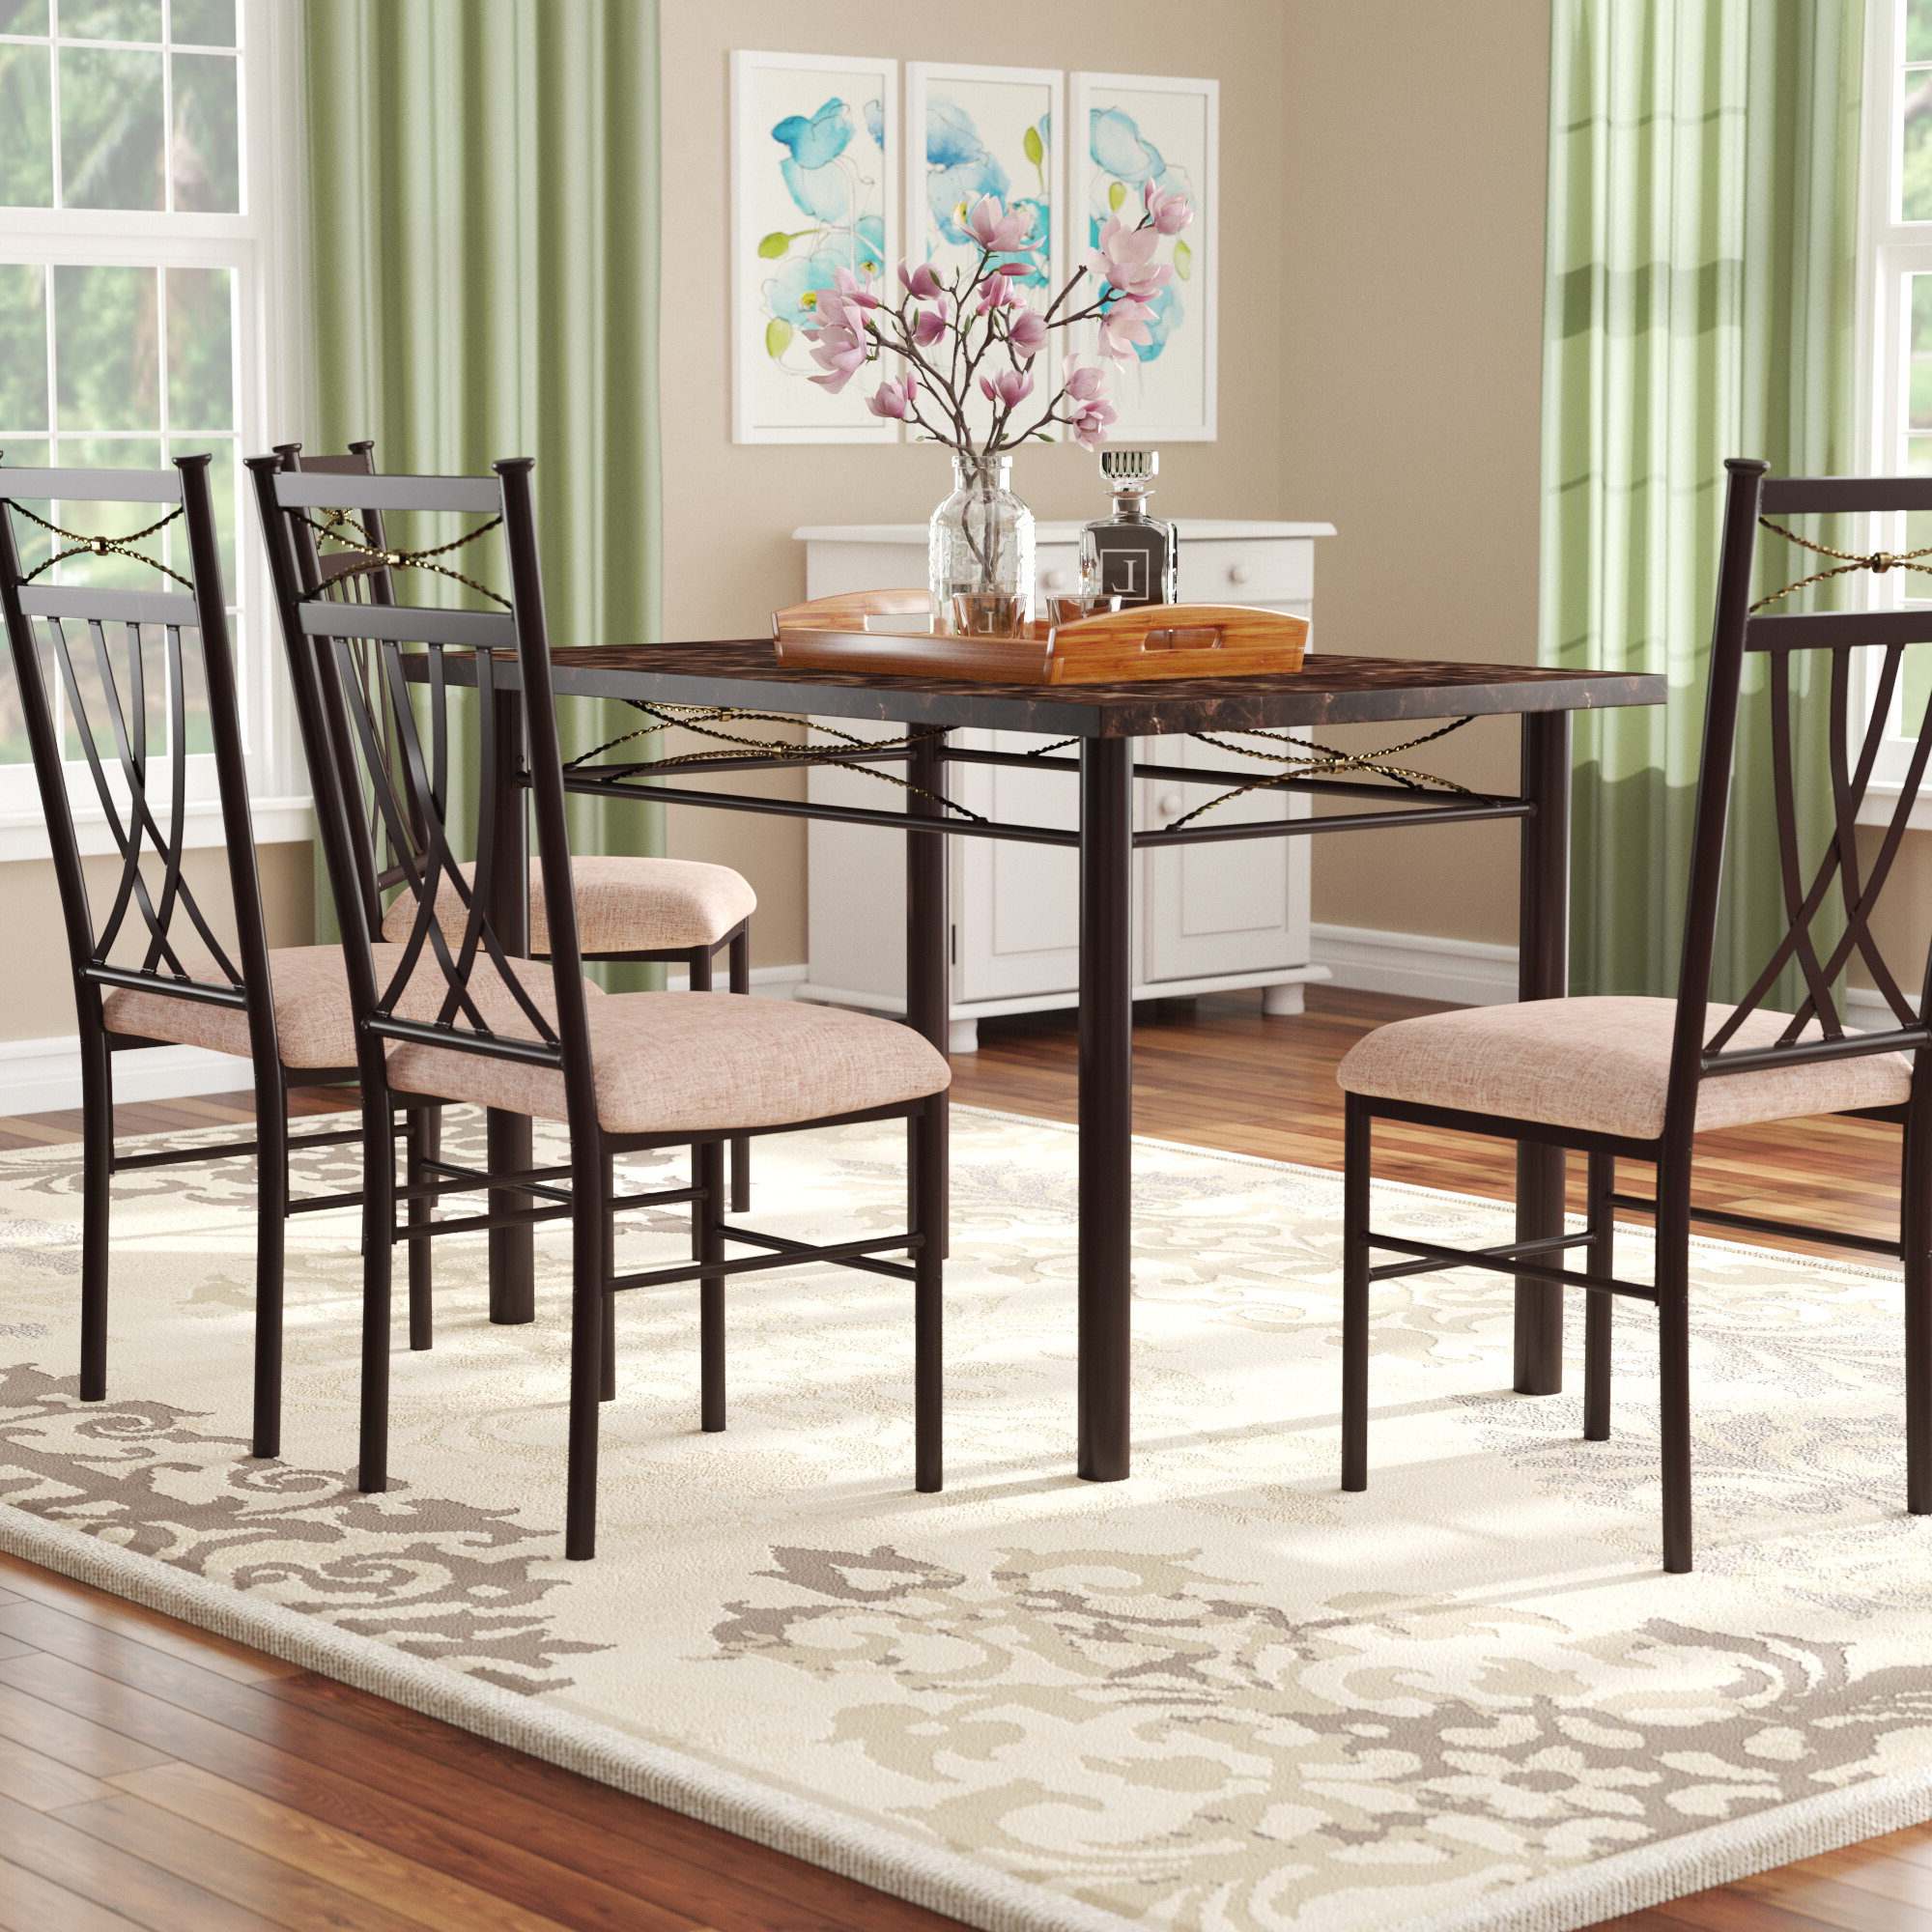 Most Recently Released Autberry 5 Piece Dining Sets Throughout Branden 5 Piece Dining Set (View 14 of 20)